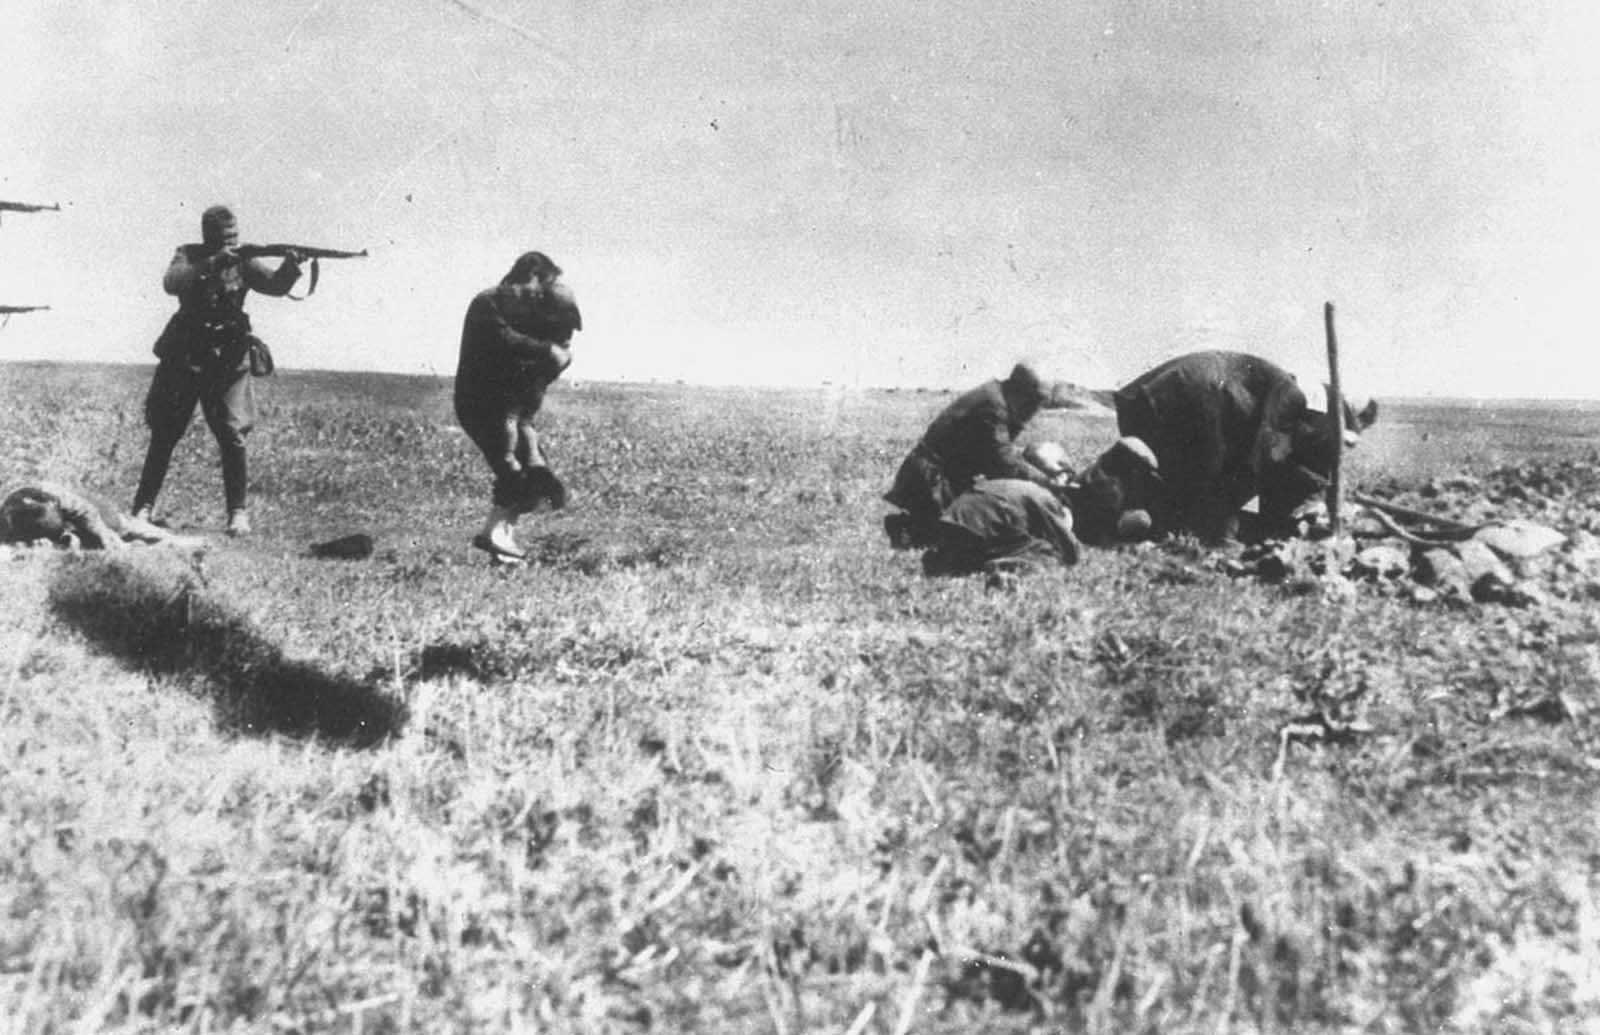 An execution of Jews in Kiev, carried out by German soldiers near Ivangorod, Ukraine, sometime in 1942. This photo was mailed from the Eastern Front to Germany and intercepted at a Warsaw post office by a member of the Polish resistance collecting documentation on Nazi war crimes. The original print was owned by Tadeusz Mazur and Jerzy Tomaszewski and now resides in Historical Archives in Warsaw. The original German inscription on the back of the photograph reads,